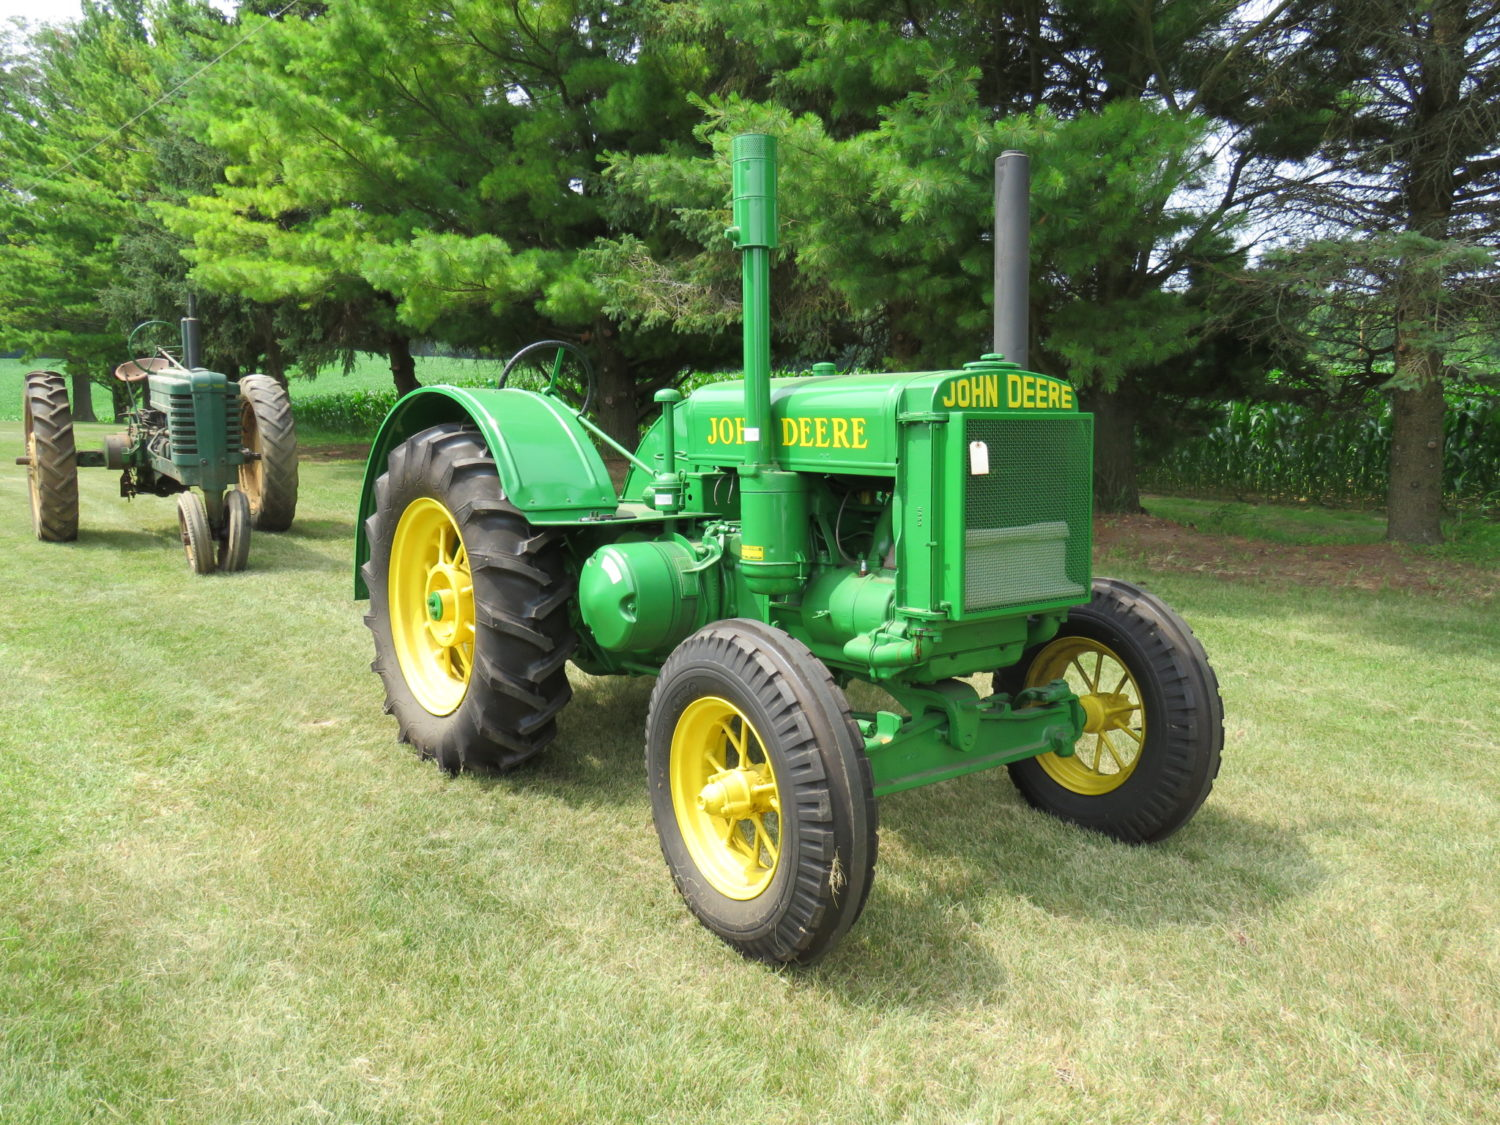 Collector Cars, Antique Tractors, Parts, Memorabilia & More.. The Del Beyer Estate Auction - image 12